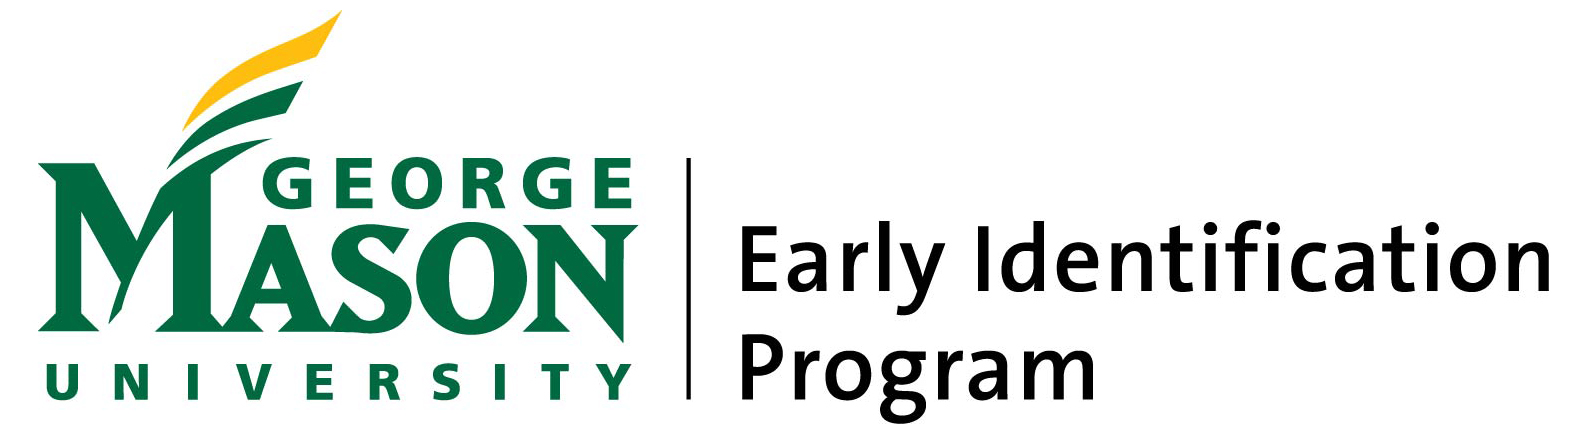 Early Identification Program logo